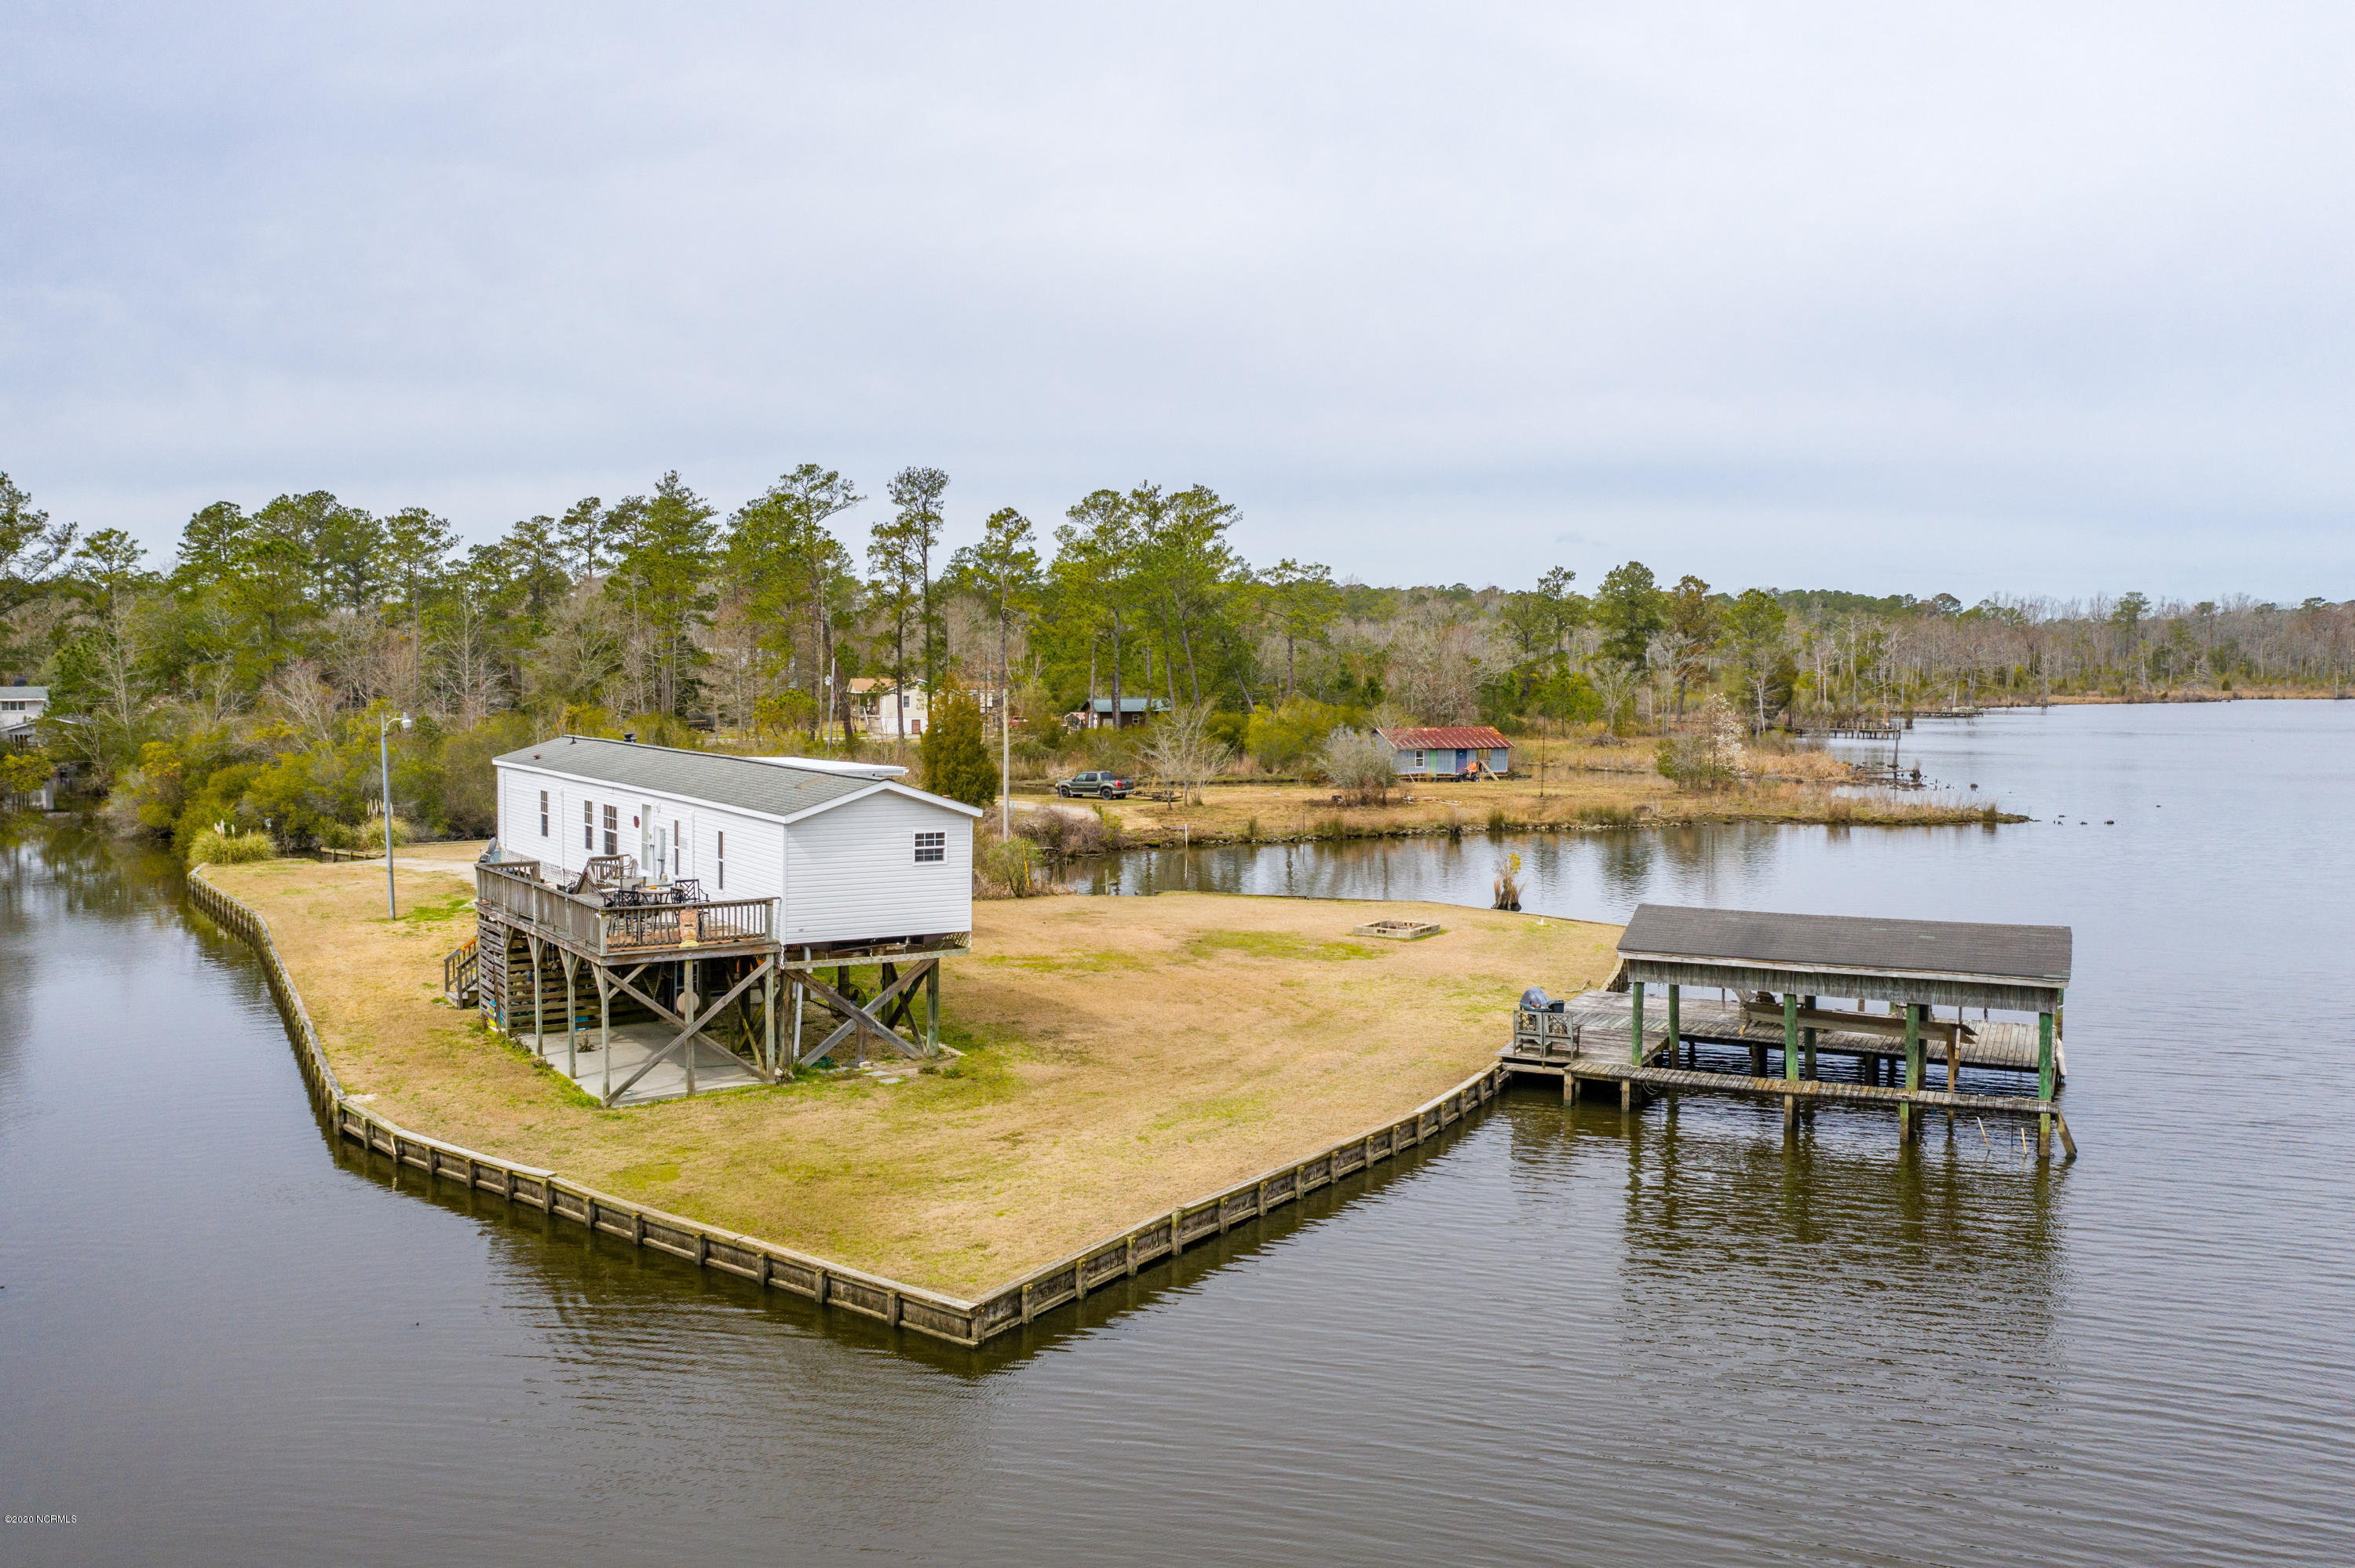 188 Captains Cove, Washington, North Carolina 27889, 2 Bedrooms Bedrooms, 6 Rooms Rooms,2 BathroomsBathrooms,Manufactured home,For sale,Captains,100208833